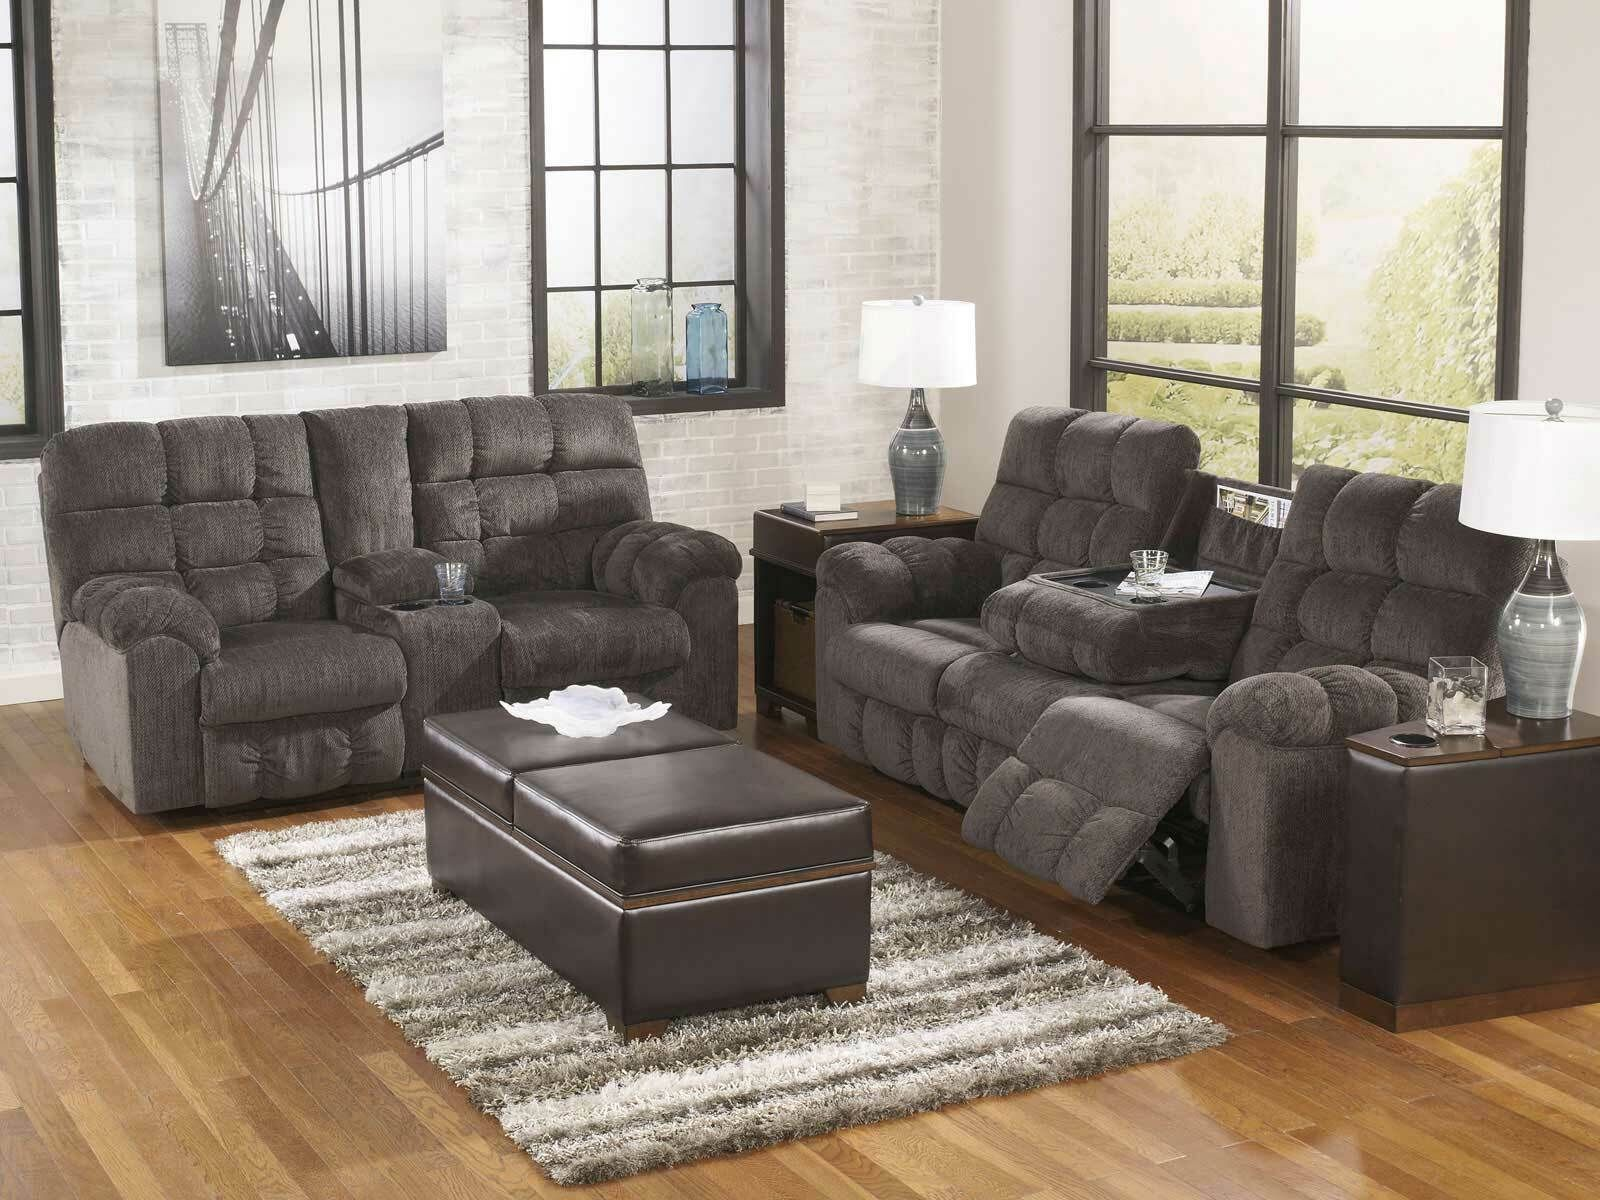 Modern Living Room Furniture Gray Fabric Reclining Sofa Couch Loveseat Set If1x Micro Living Room Collections Modern Furniture Living Room Couch And Loveseat